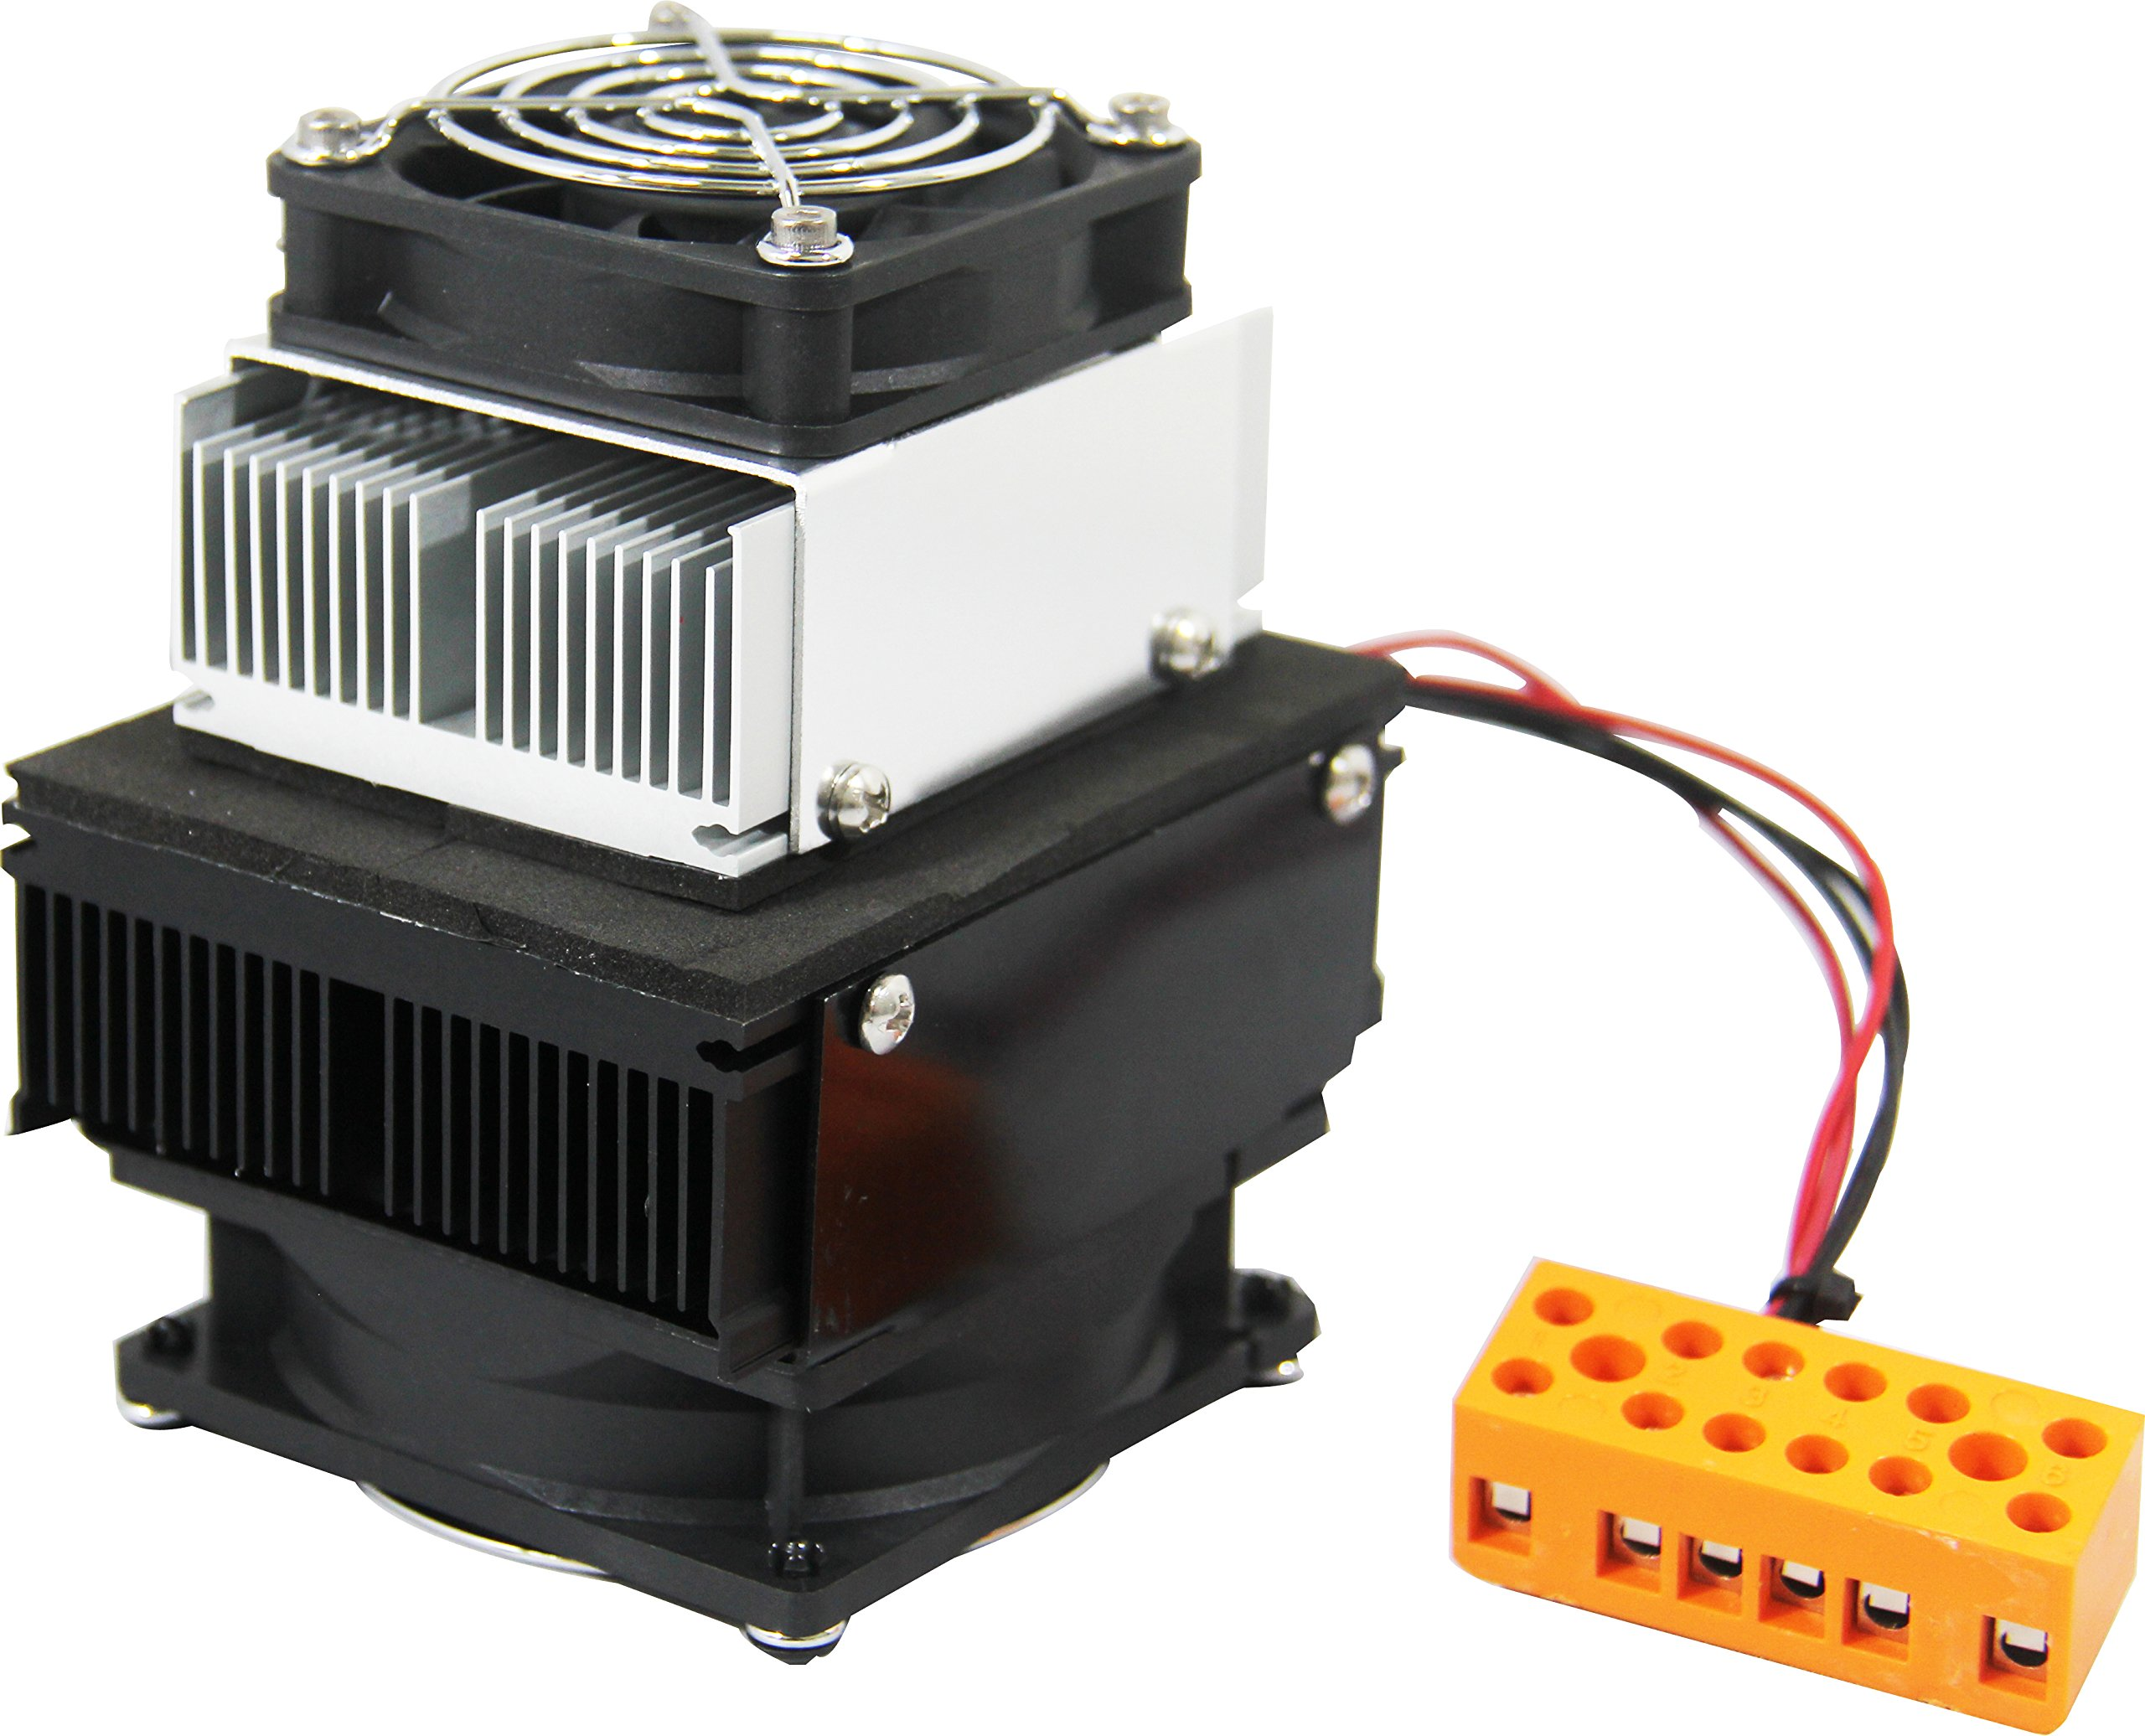 P&N TECHNOLOGY Industrial Peltier 24W 12V Mini TEC Cooler with IP55 Protection by P&N TECHNOLOGY